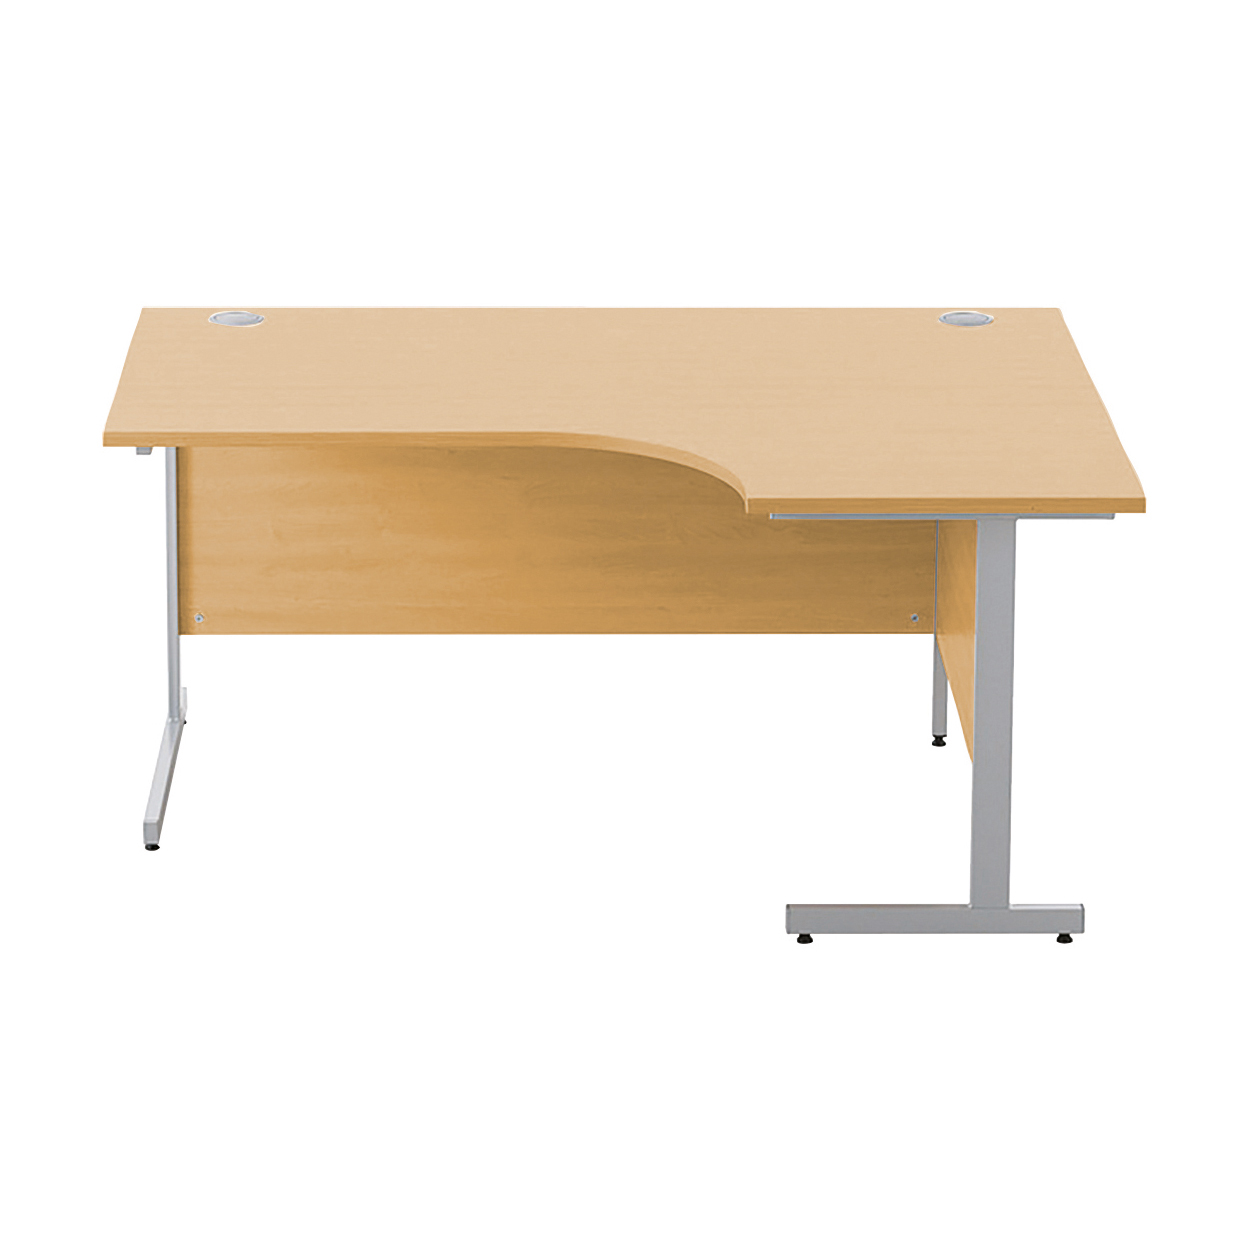 Furniture & Office Environment